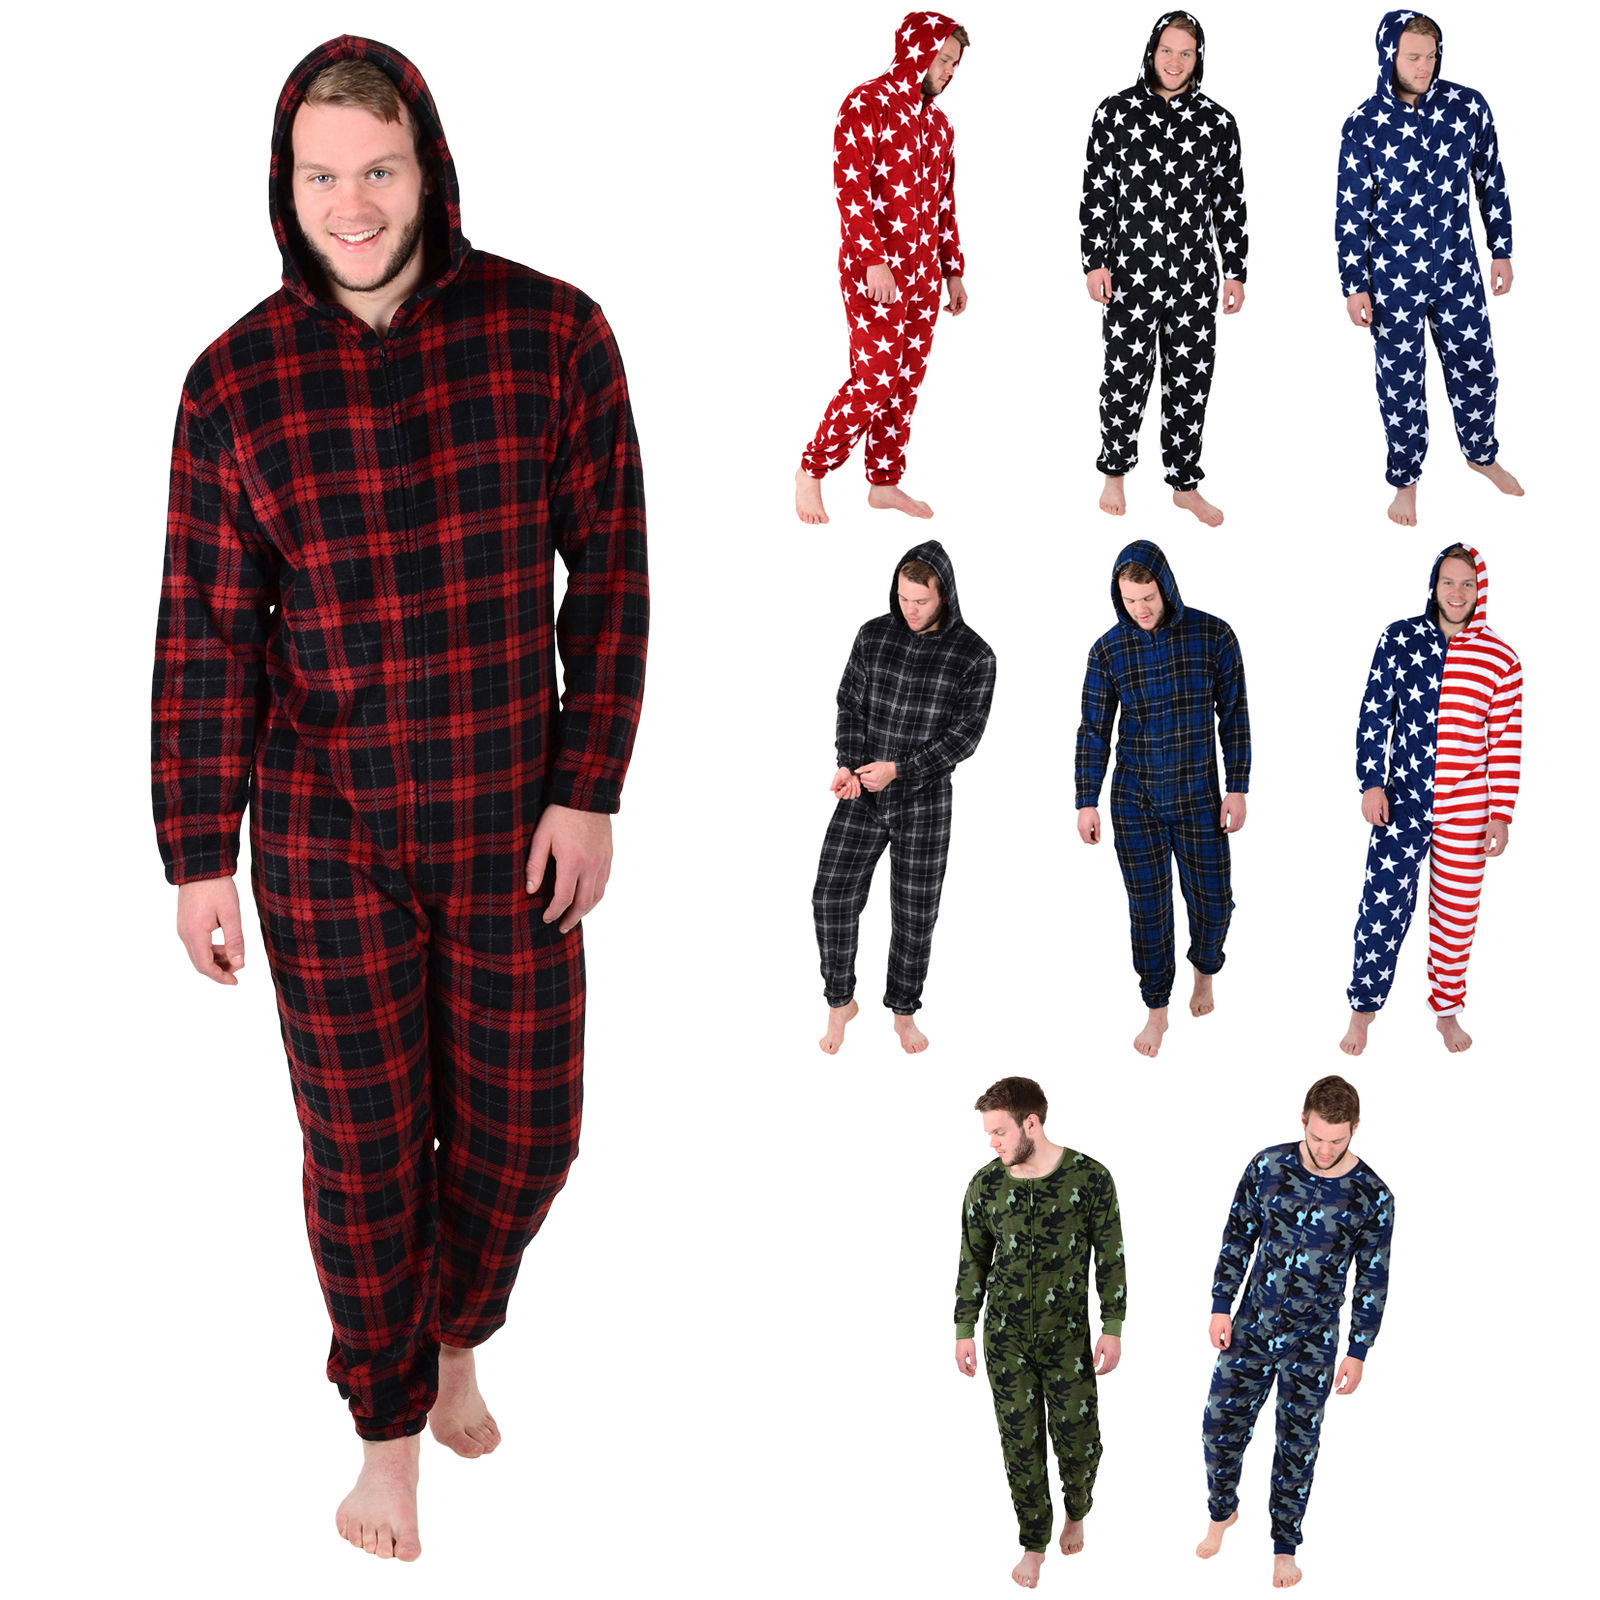 yageimer.ga factory directly offer Adult Men Women Kigurumi onesie pajamas! We have various adult cartoon animal kigurumi Onesies costume with reliable quality and attractive price, in stock and in sales promotion. Great for pajamas party and cosplay.